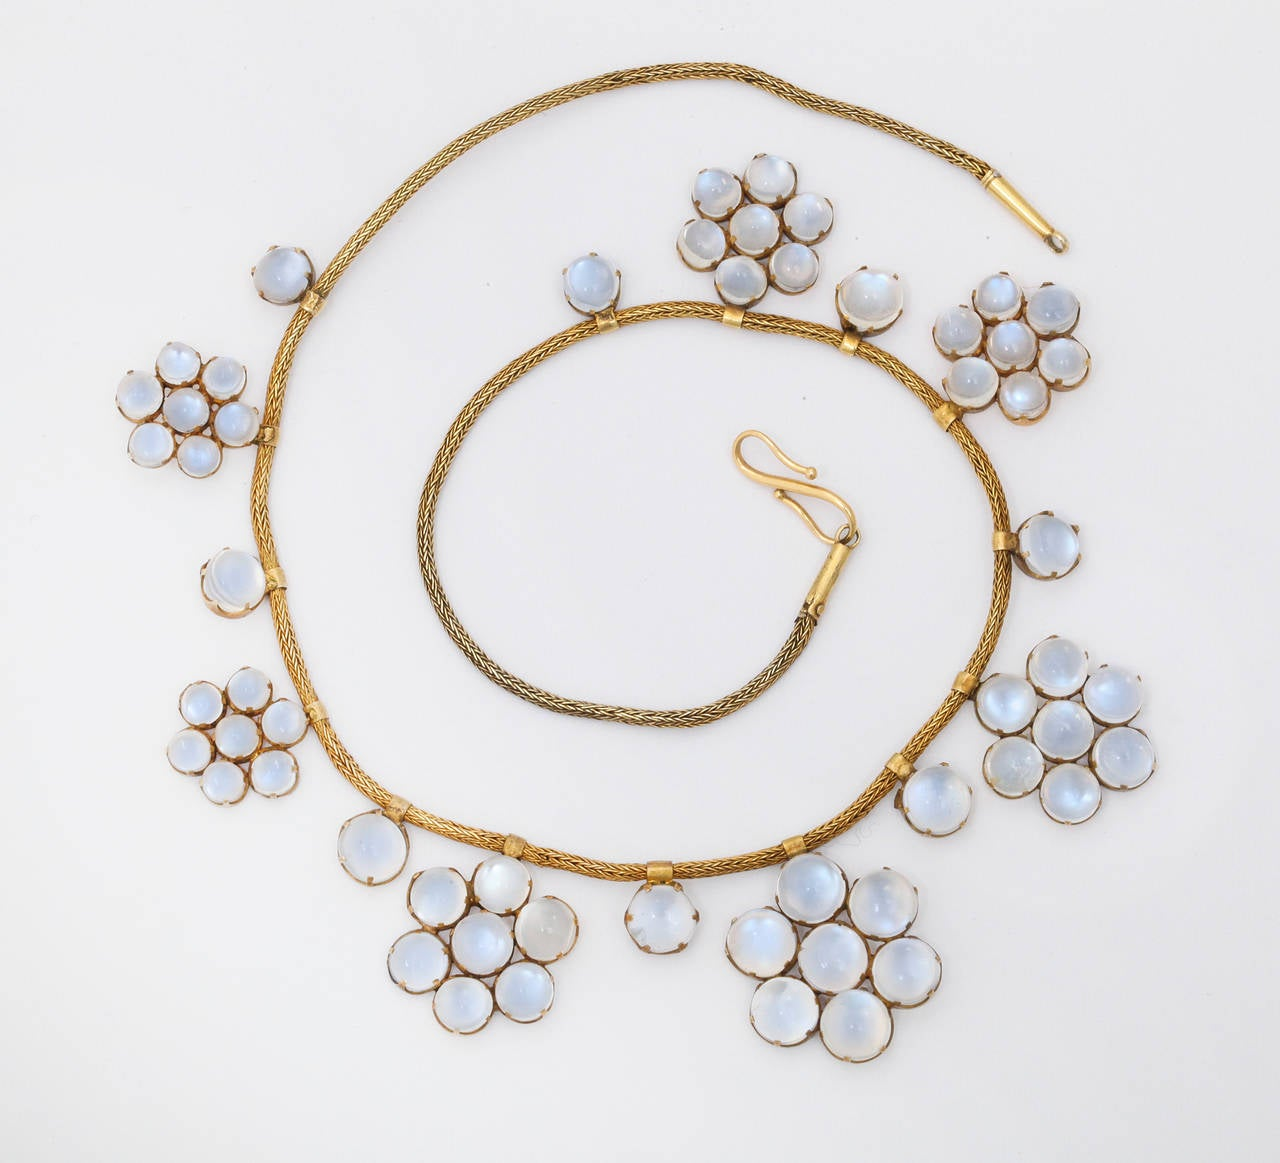 Antique Moonstone Gold Necklace 2